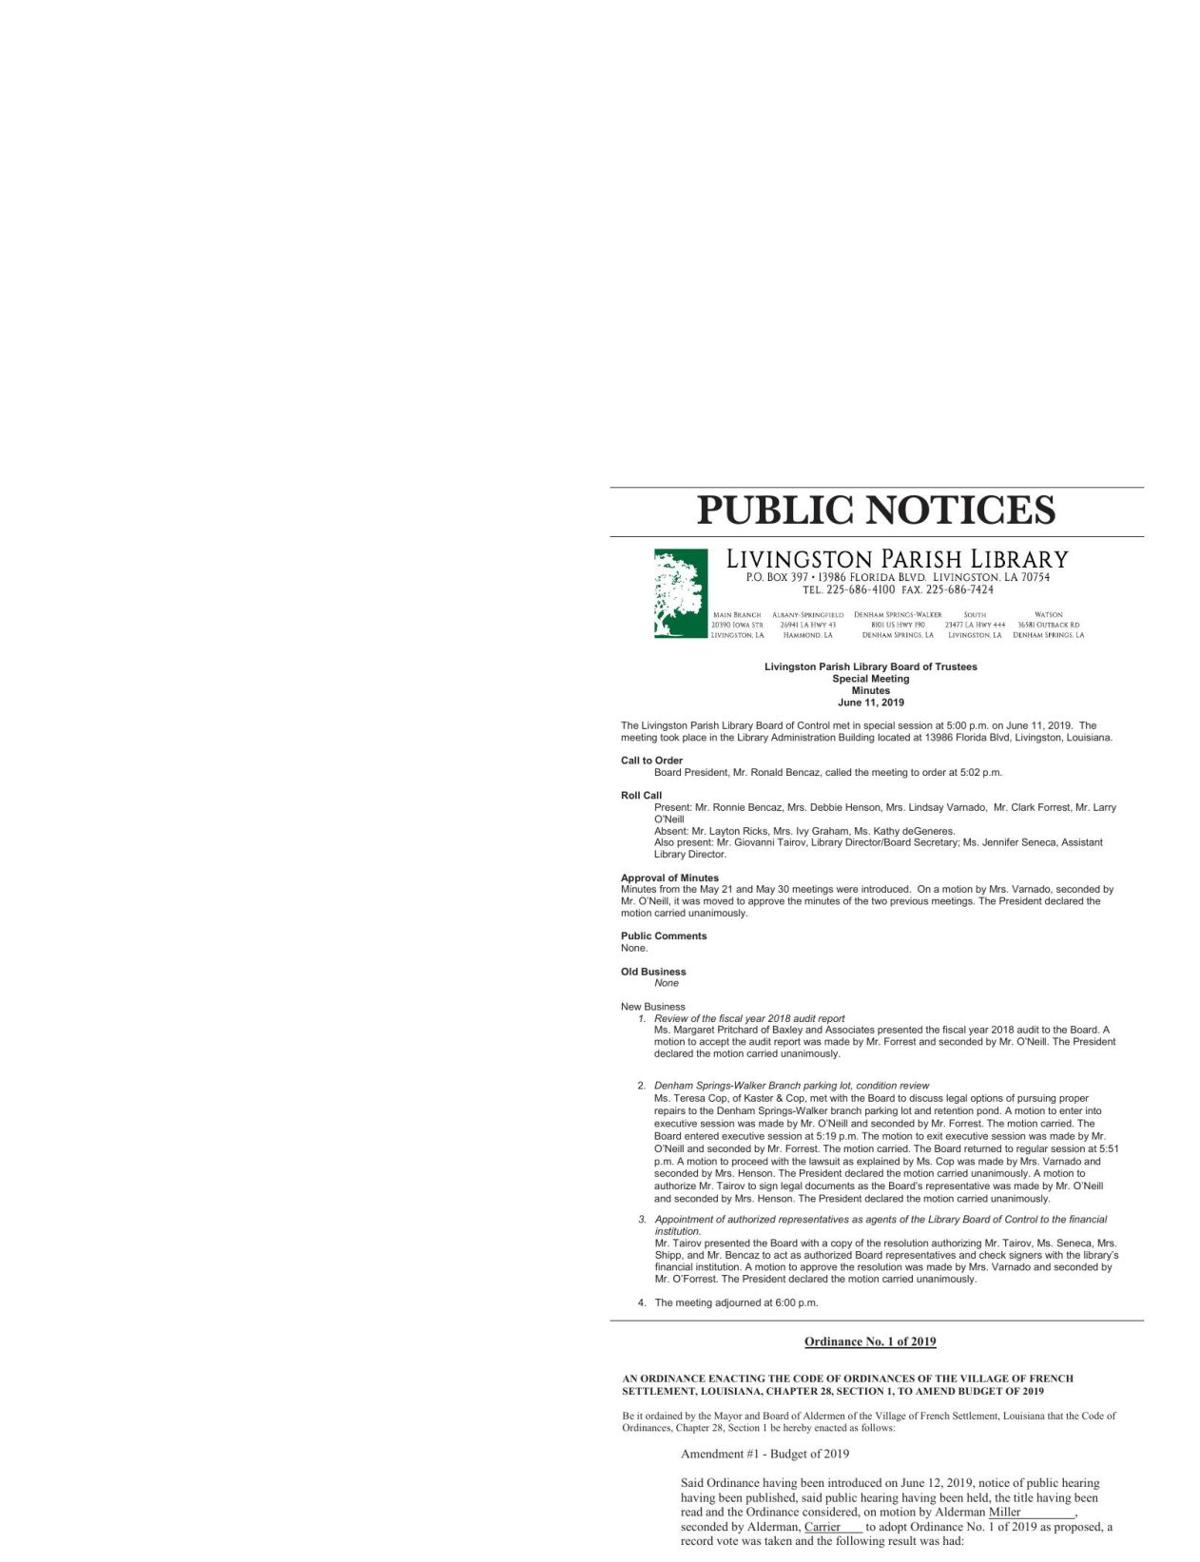 Public Notices published July 18, 2019